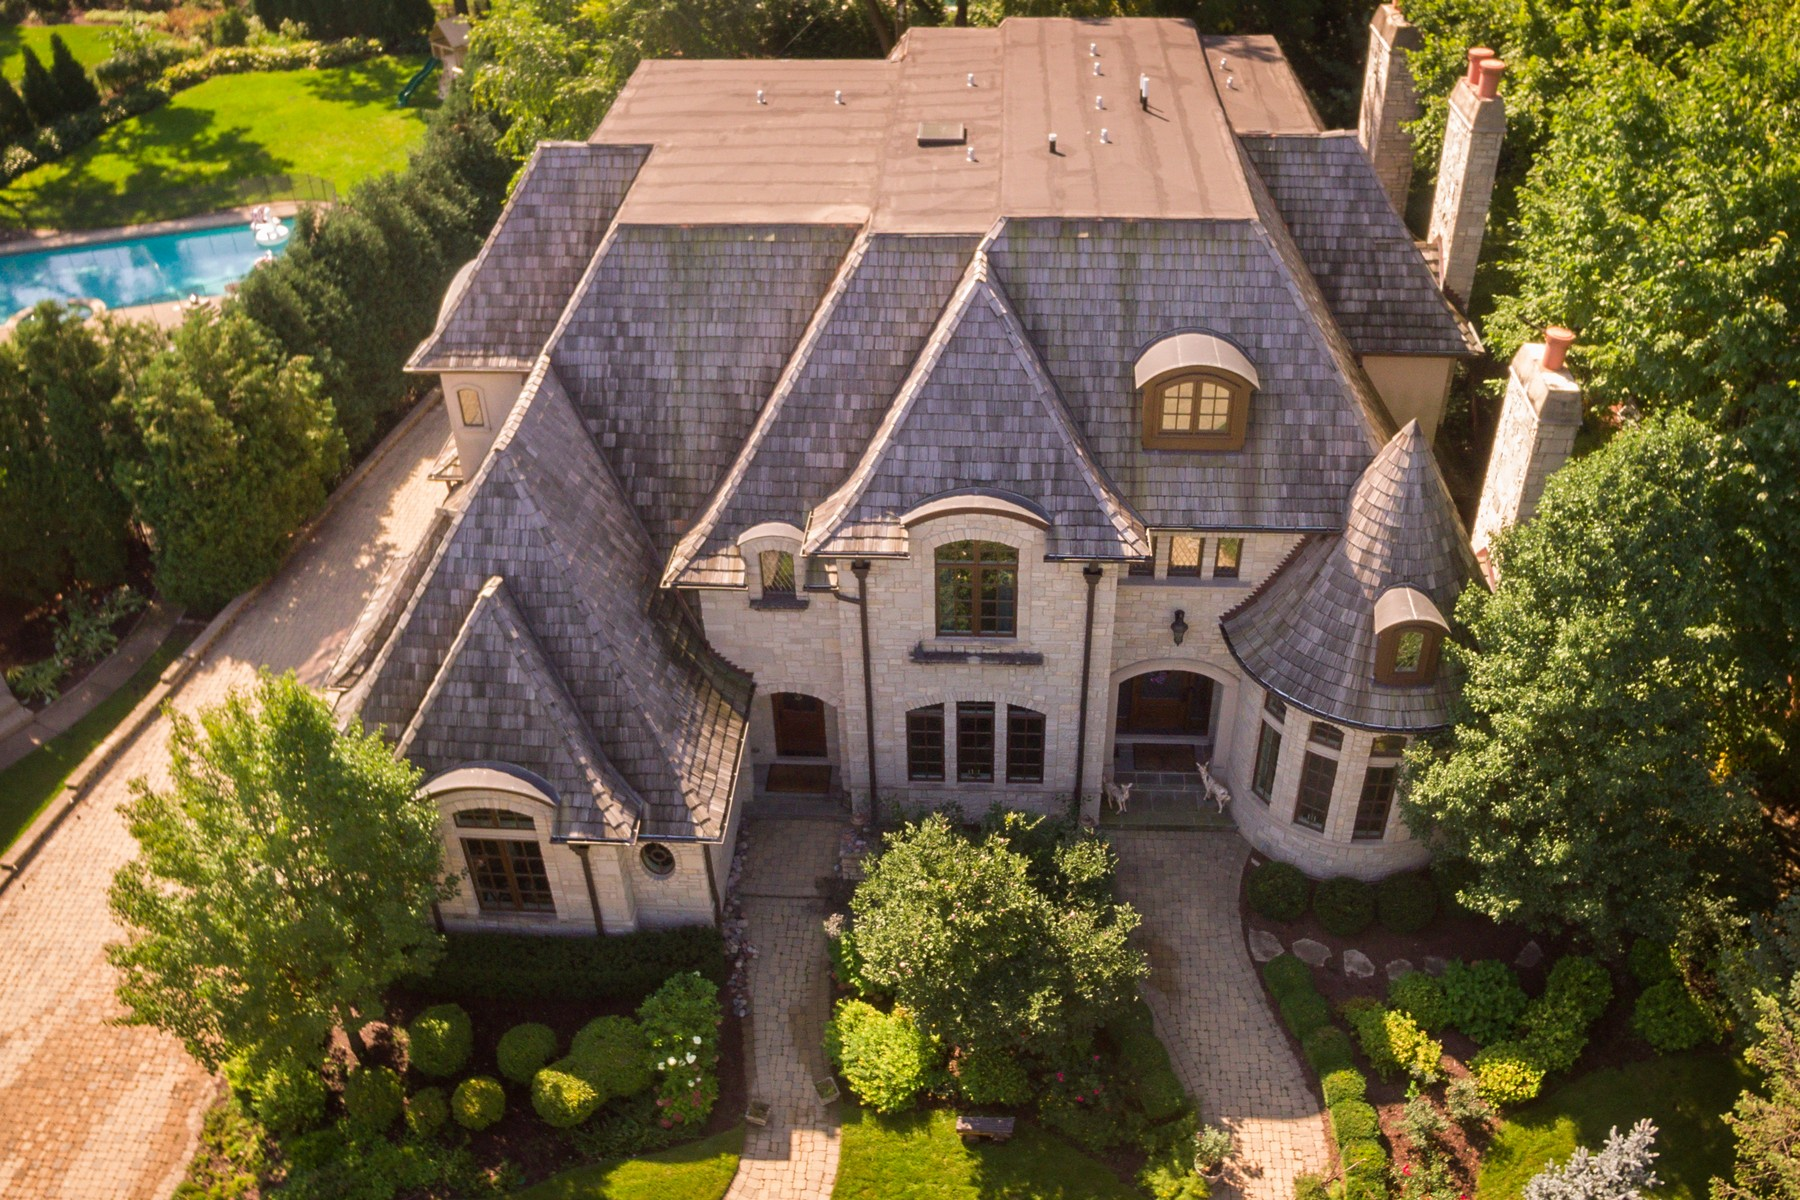 Single Family Home for Sale at Iconic Estate 732 Bittersweet Lane Hinsdale, Illinois 60521 United States